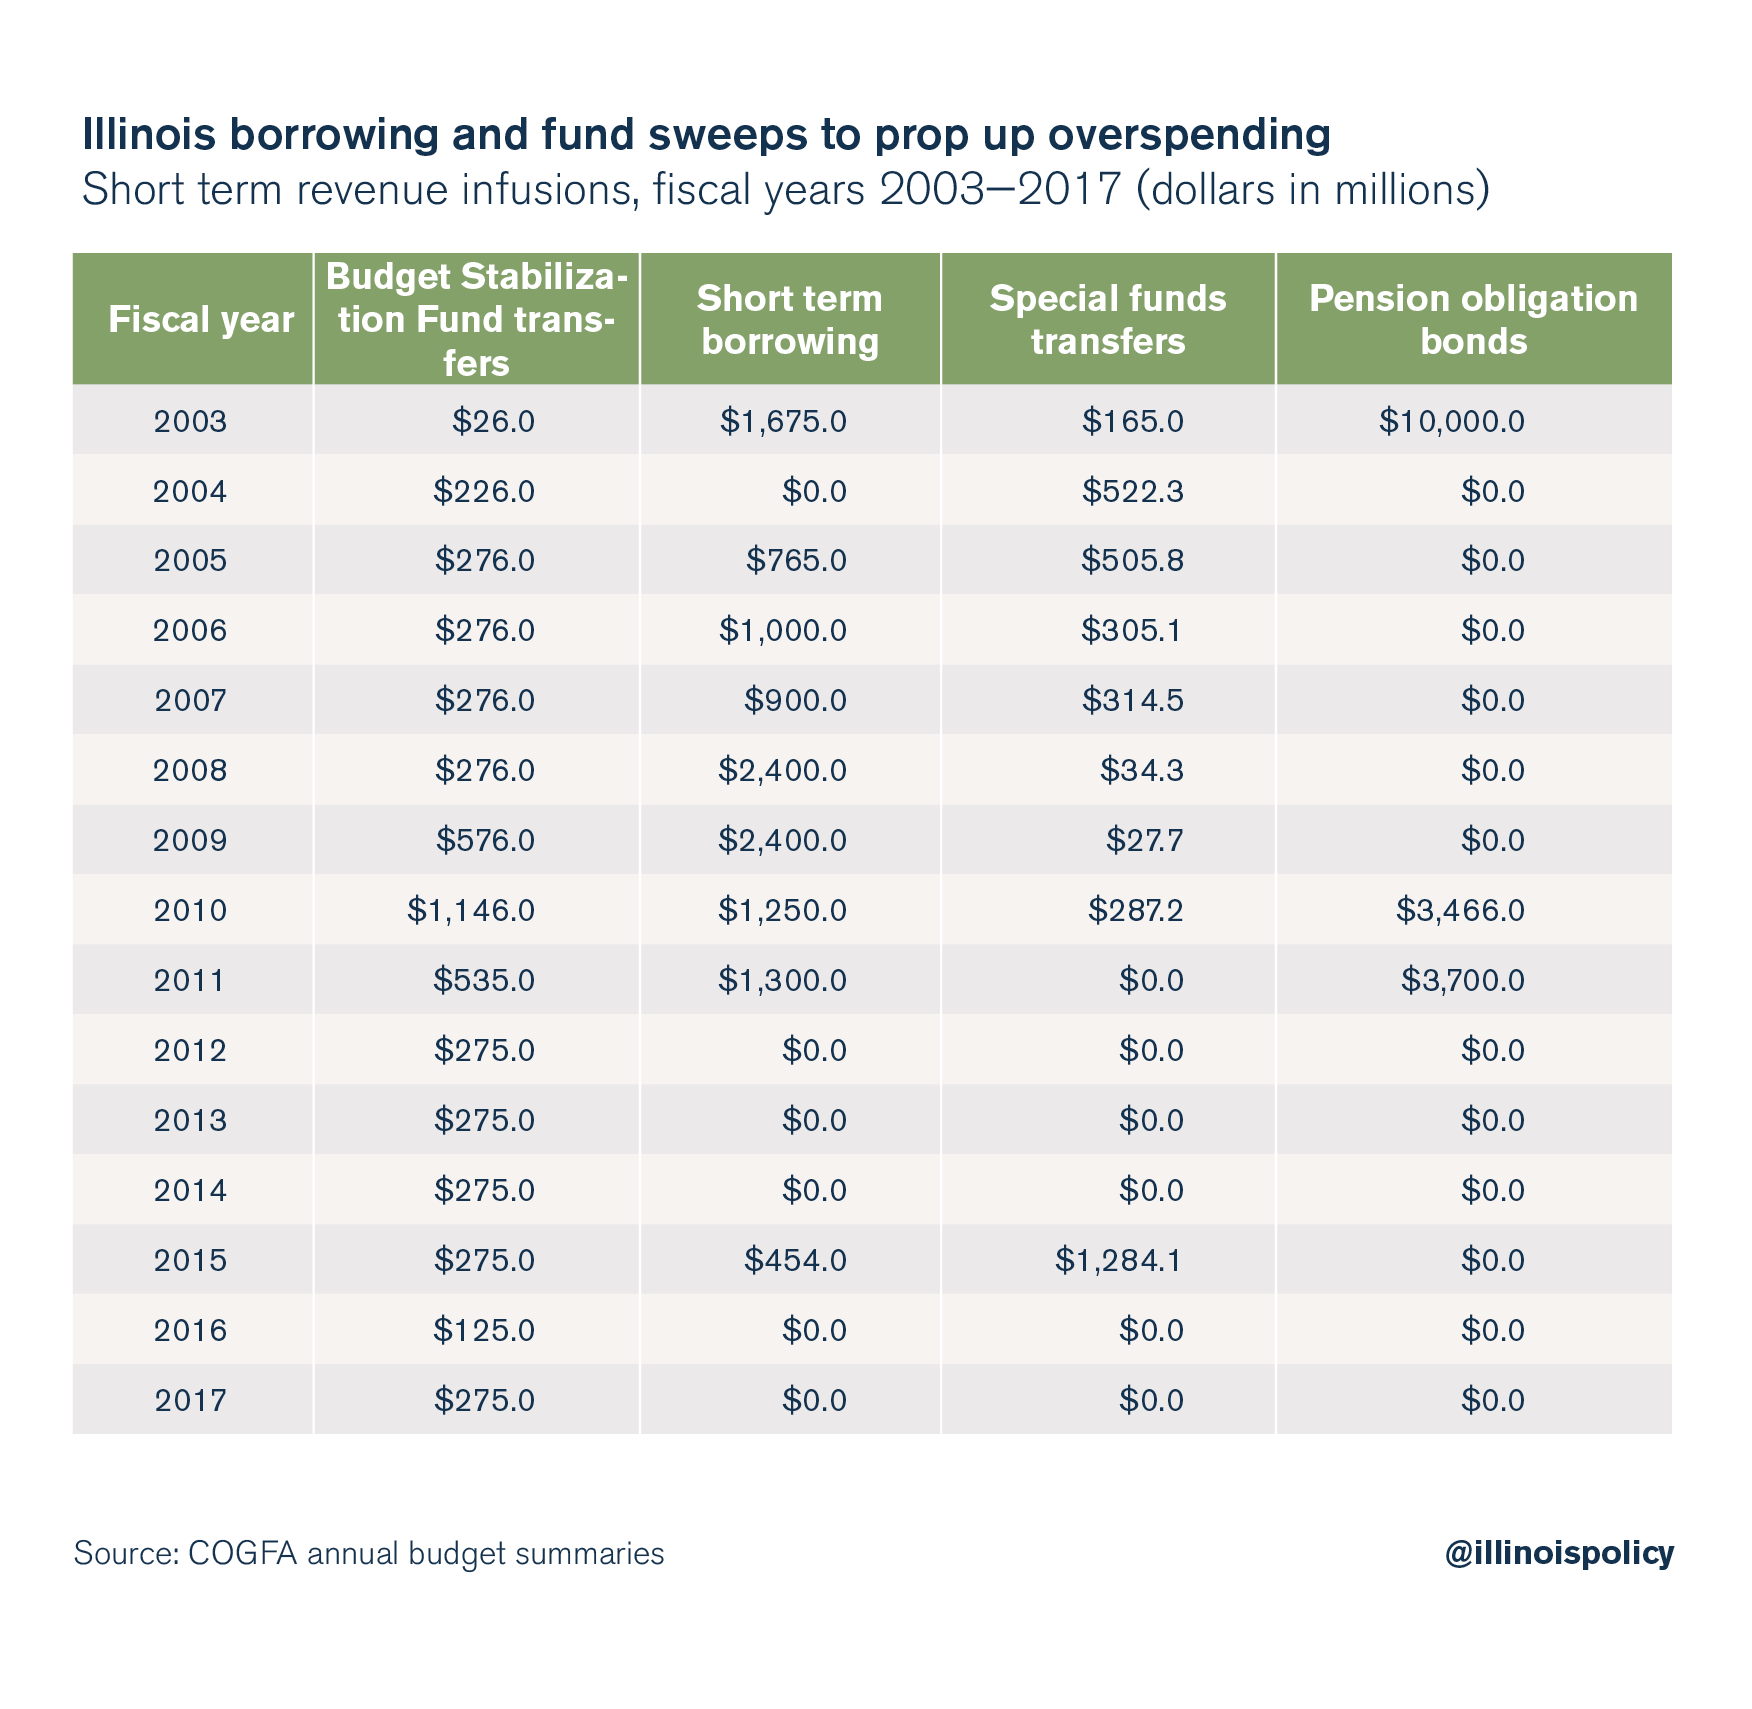 Illinois borrowing and fund sweeps to prop up overspending